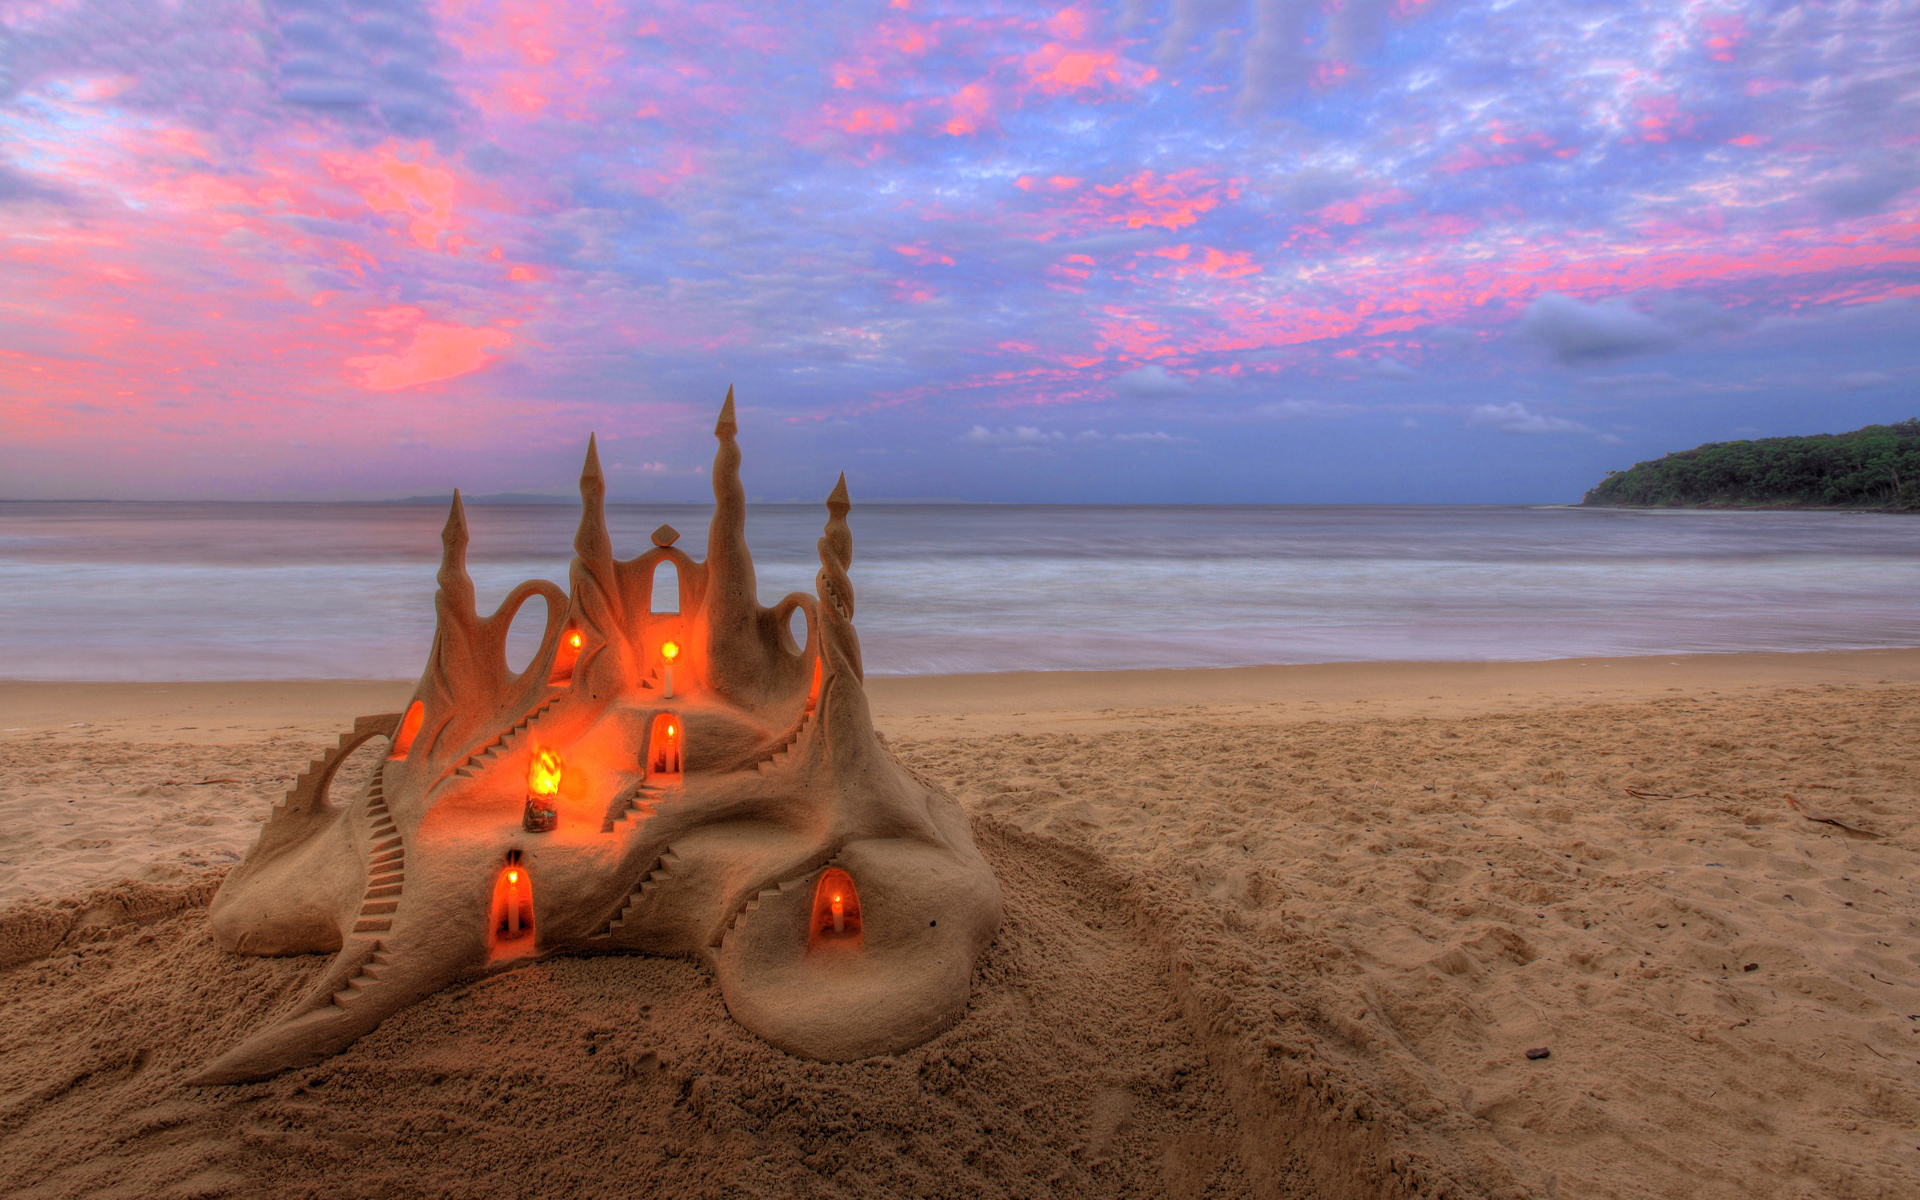 Beach sandcastle